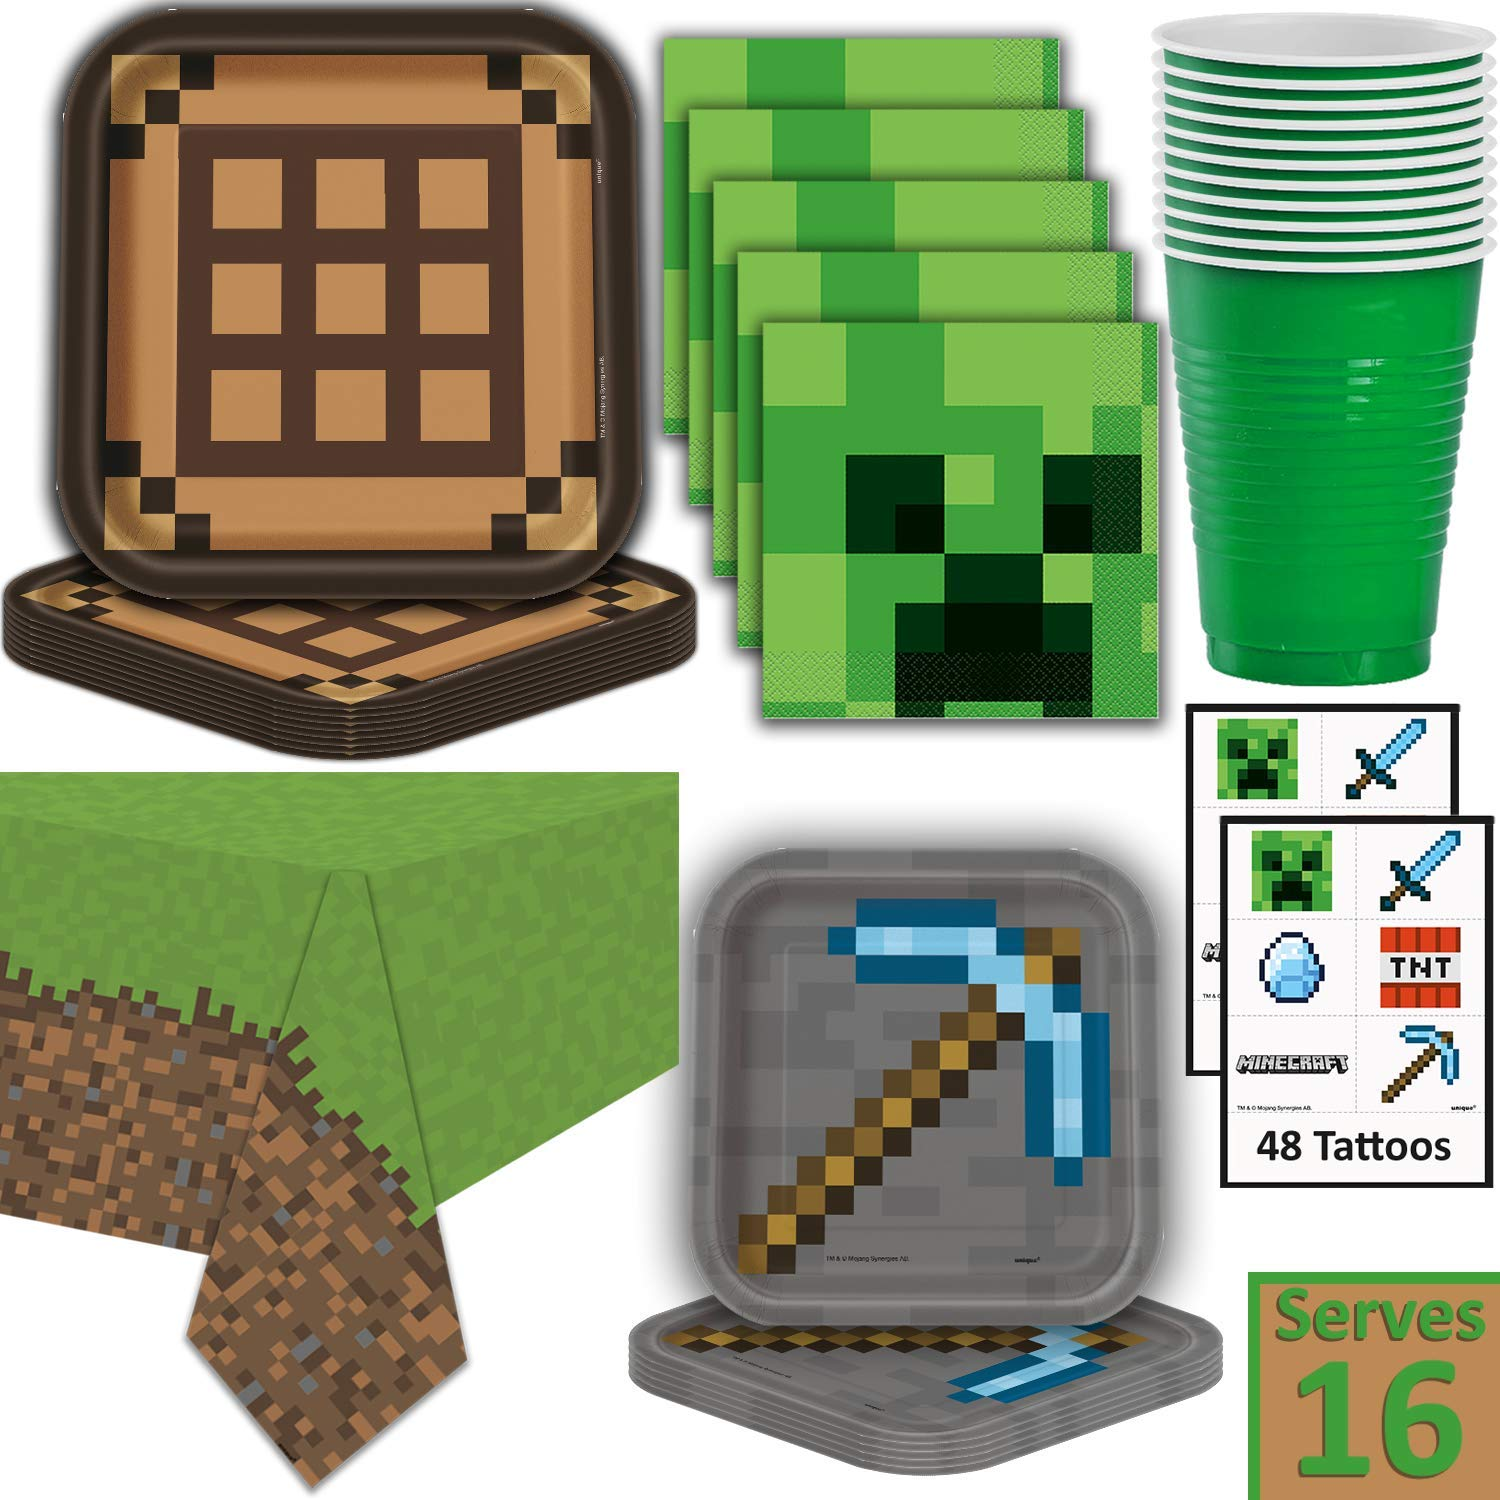 Minecraft Party Supplies for 16 - Dinner Plates, Dessert Plates, Napkins, Cups, Tablecloth, Tattoos - Pixel Mining Theme Birthday Tableware and Favors by HeroFiber